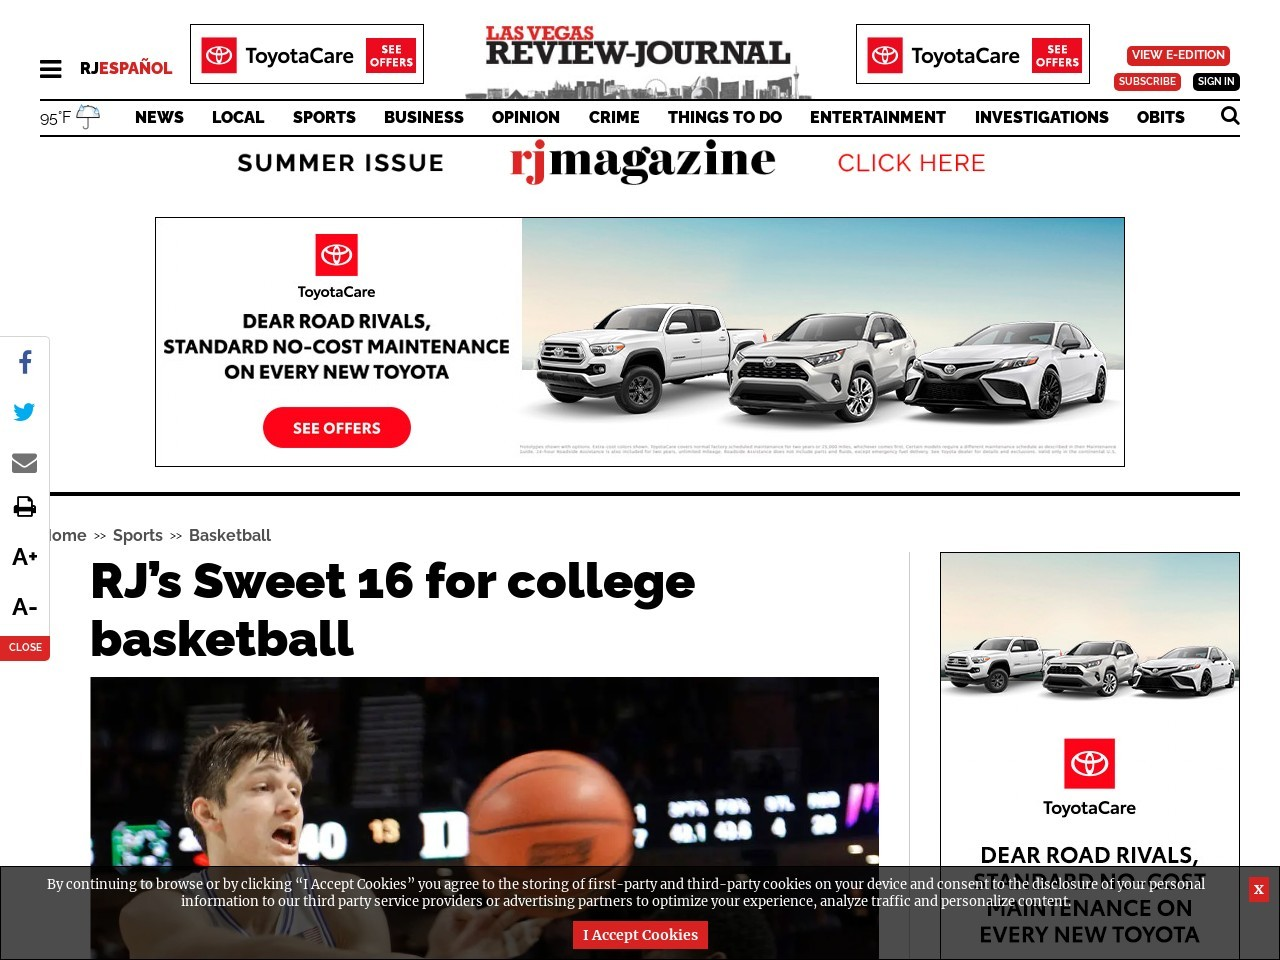 RJ's Sweet 16 for college basketball